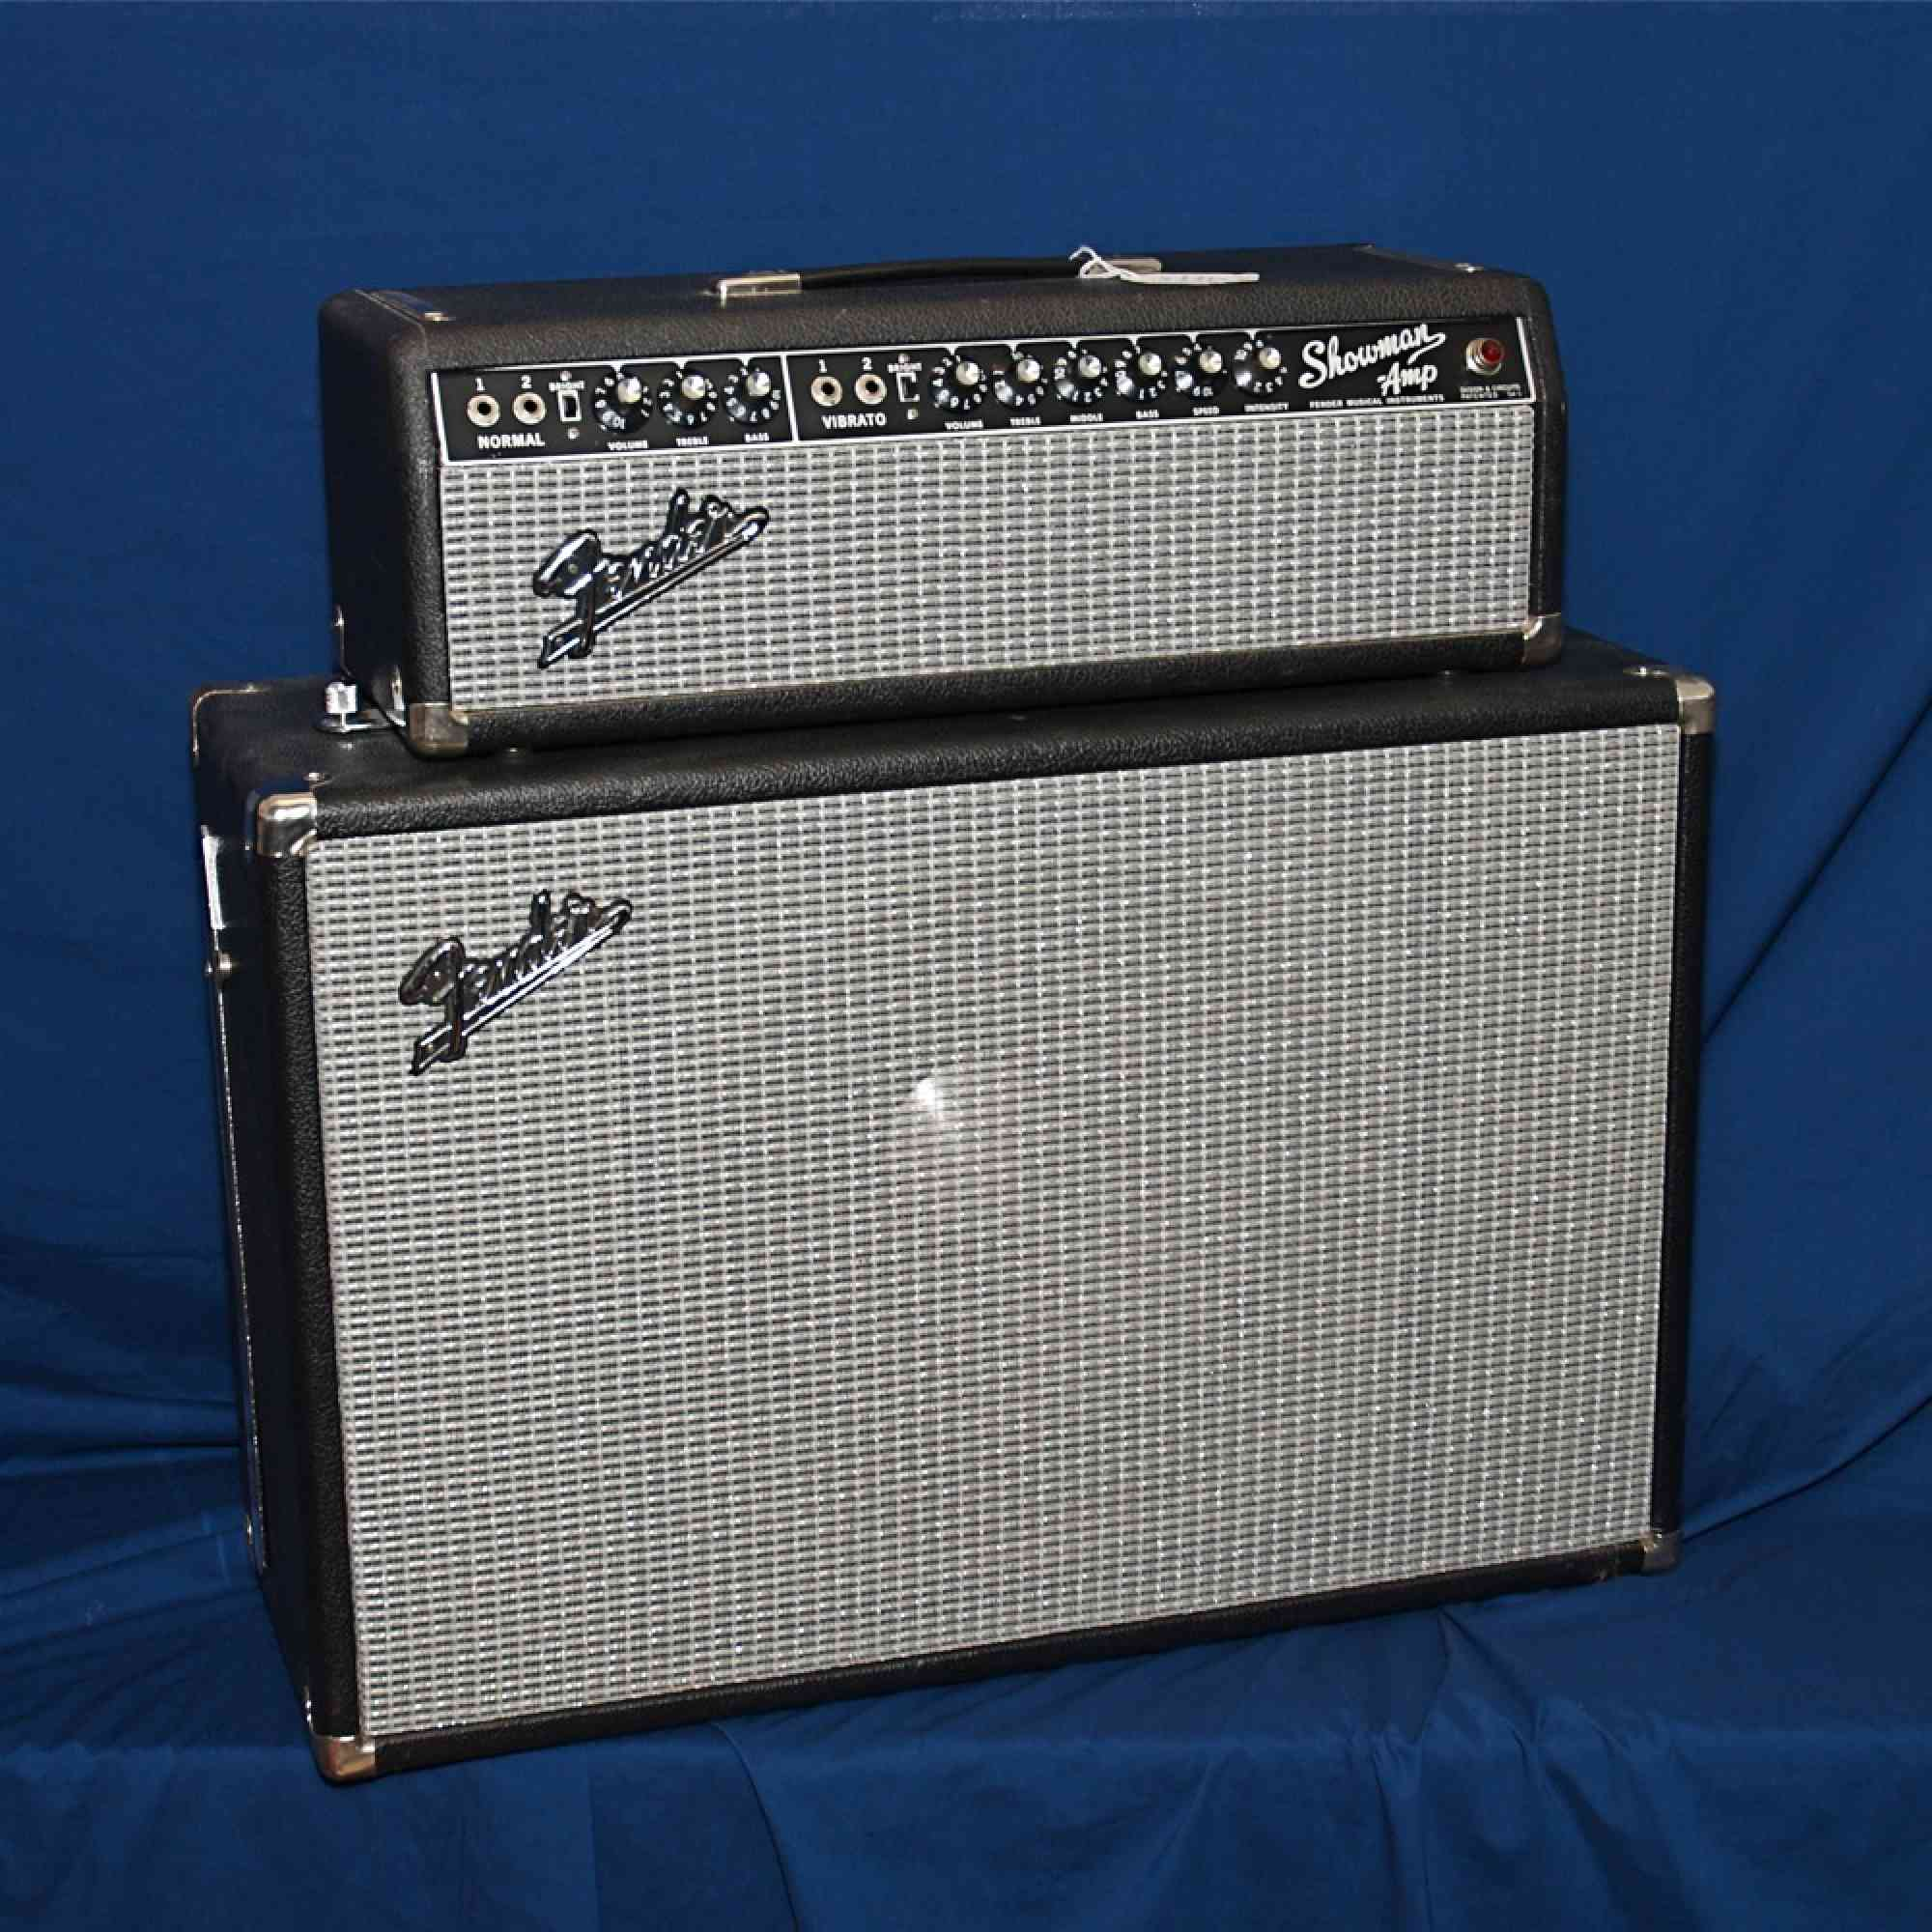 Fender Showman head and cab '66 blackface. Click to enlarge